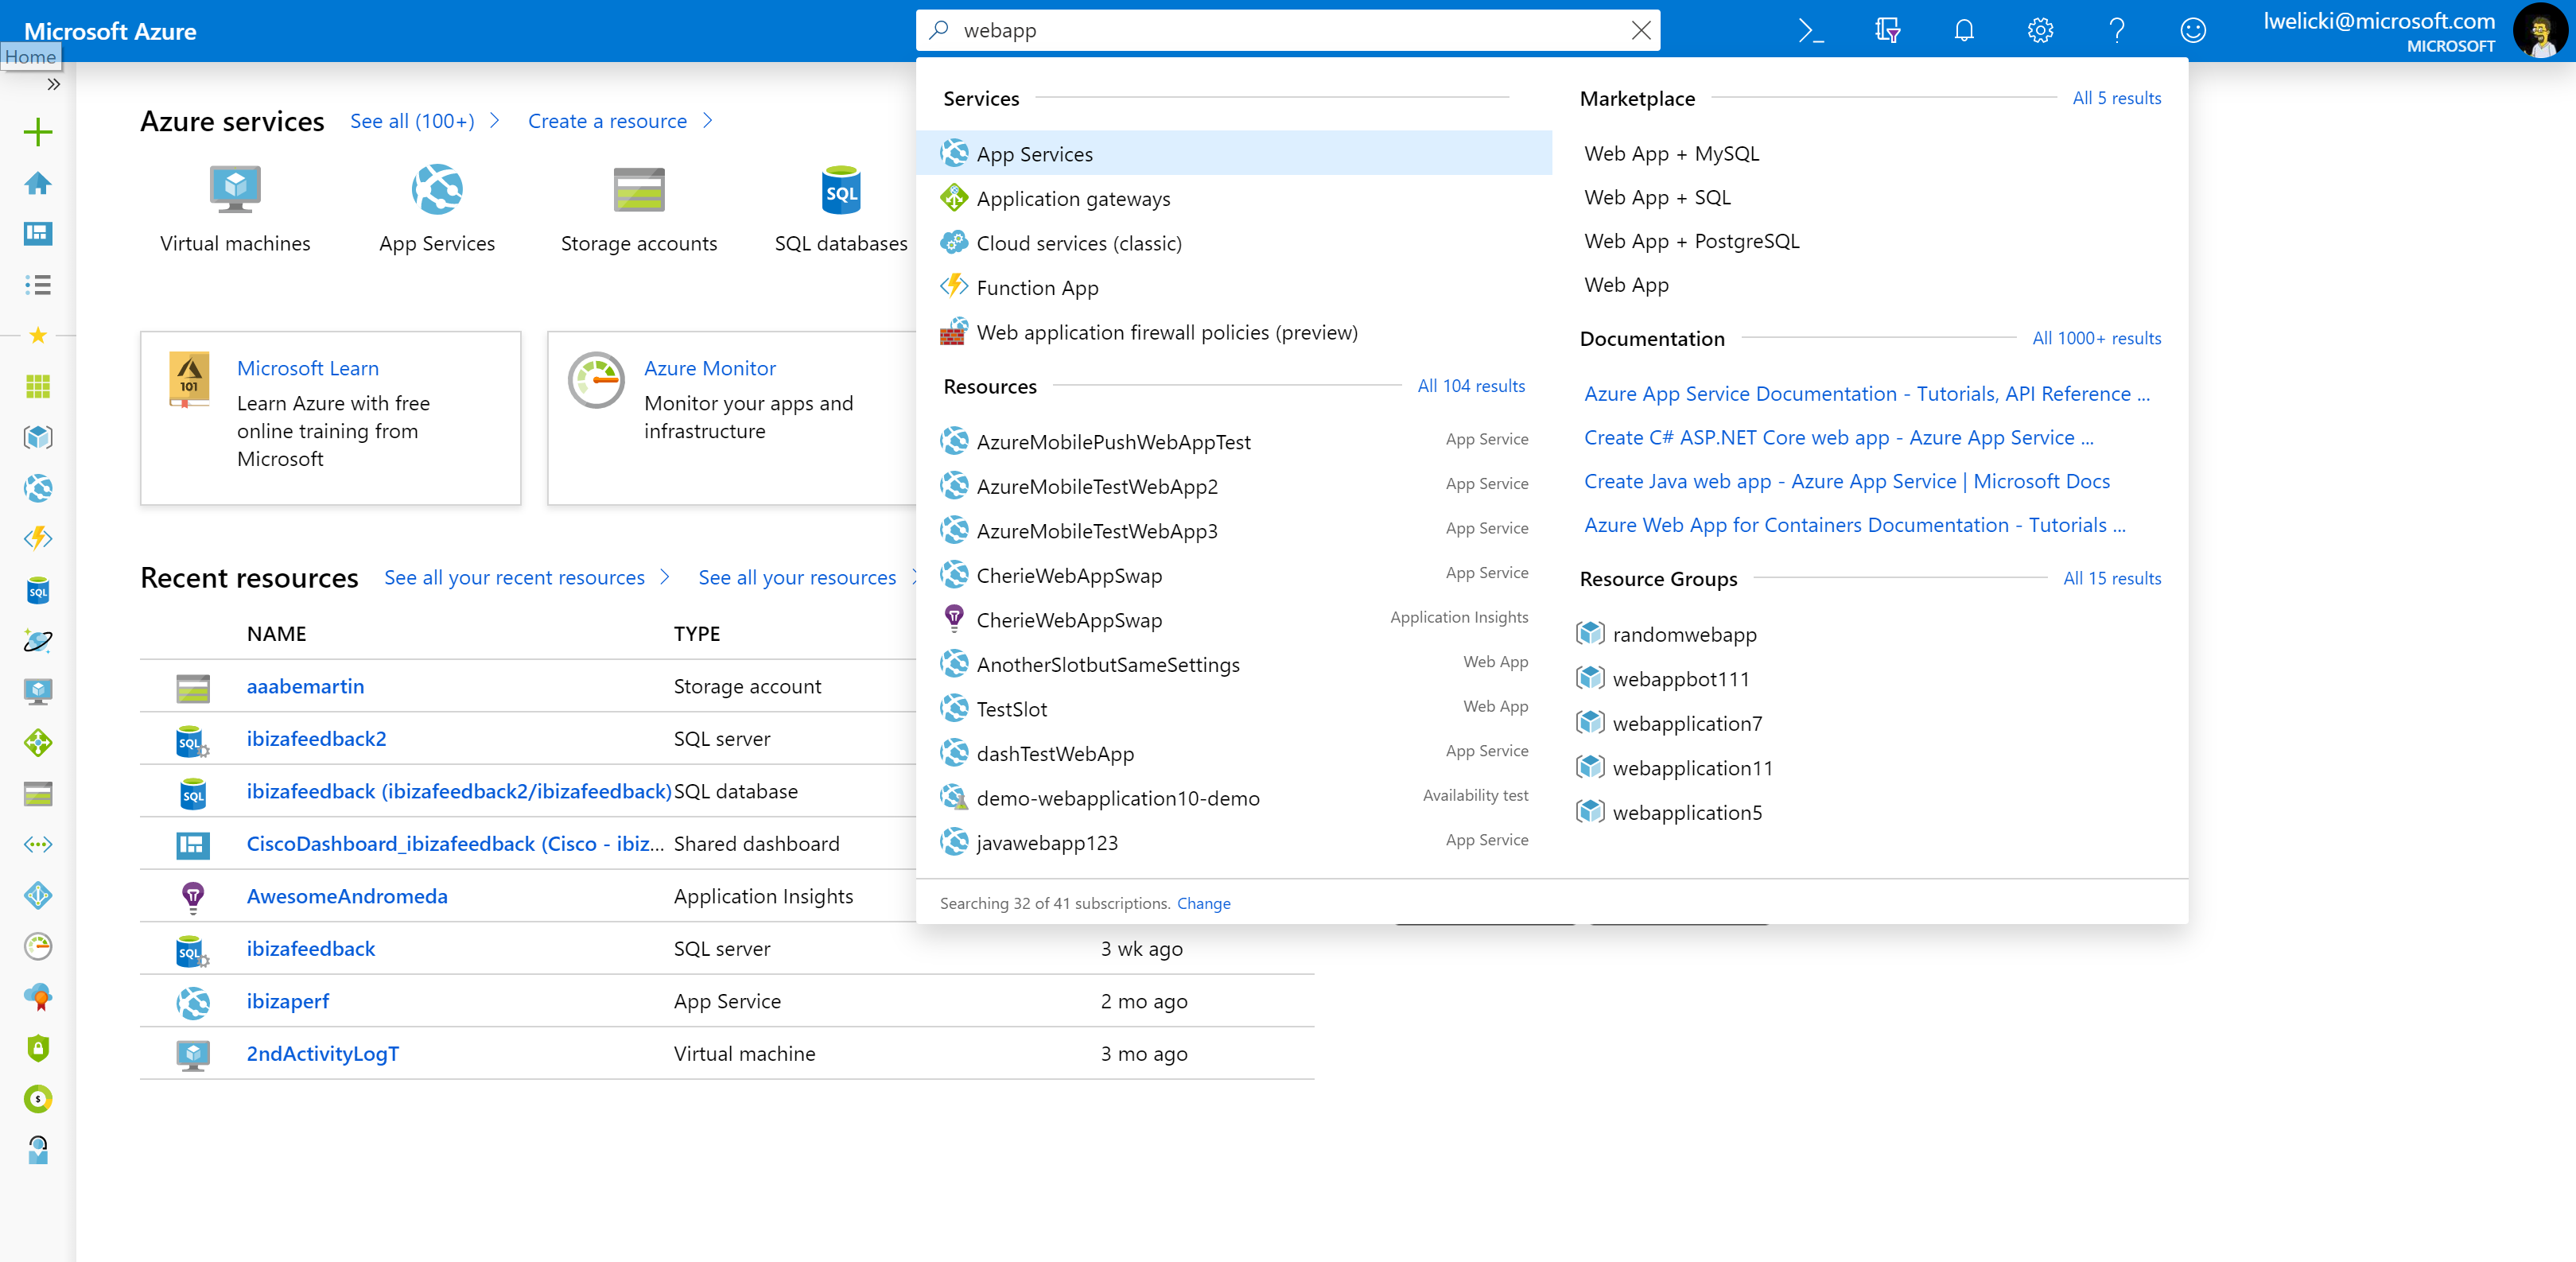 Improvements in global search results in the Azure portal